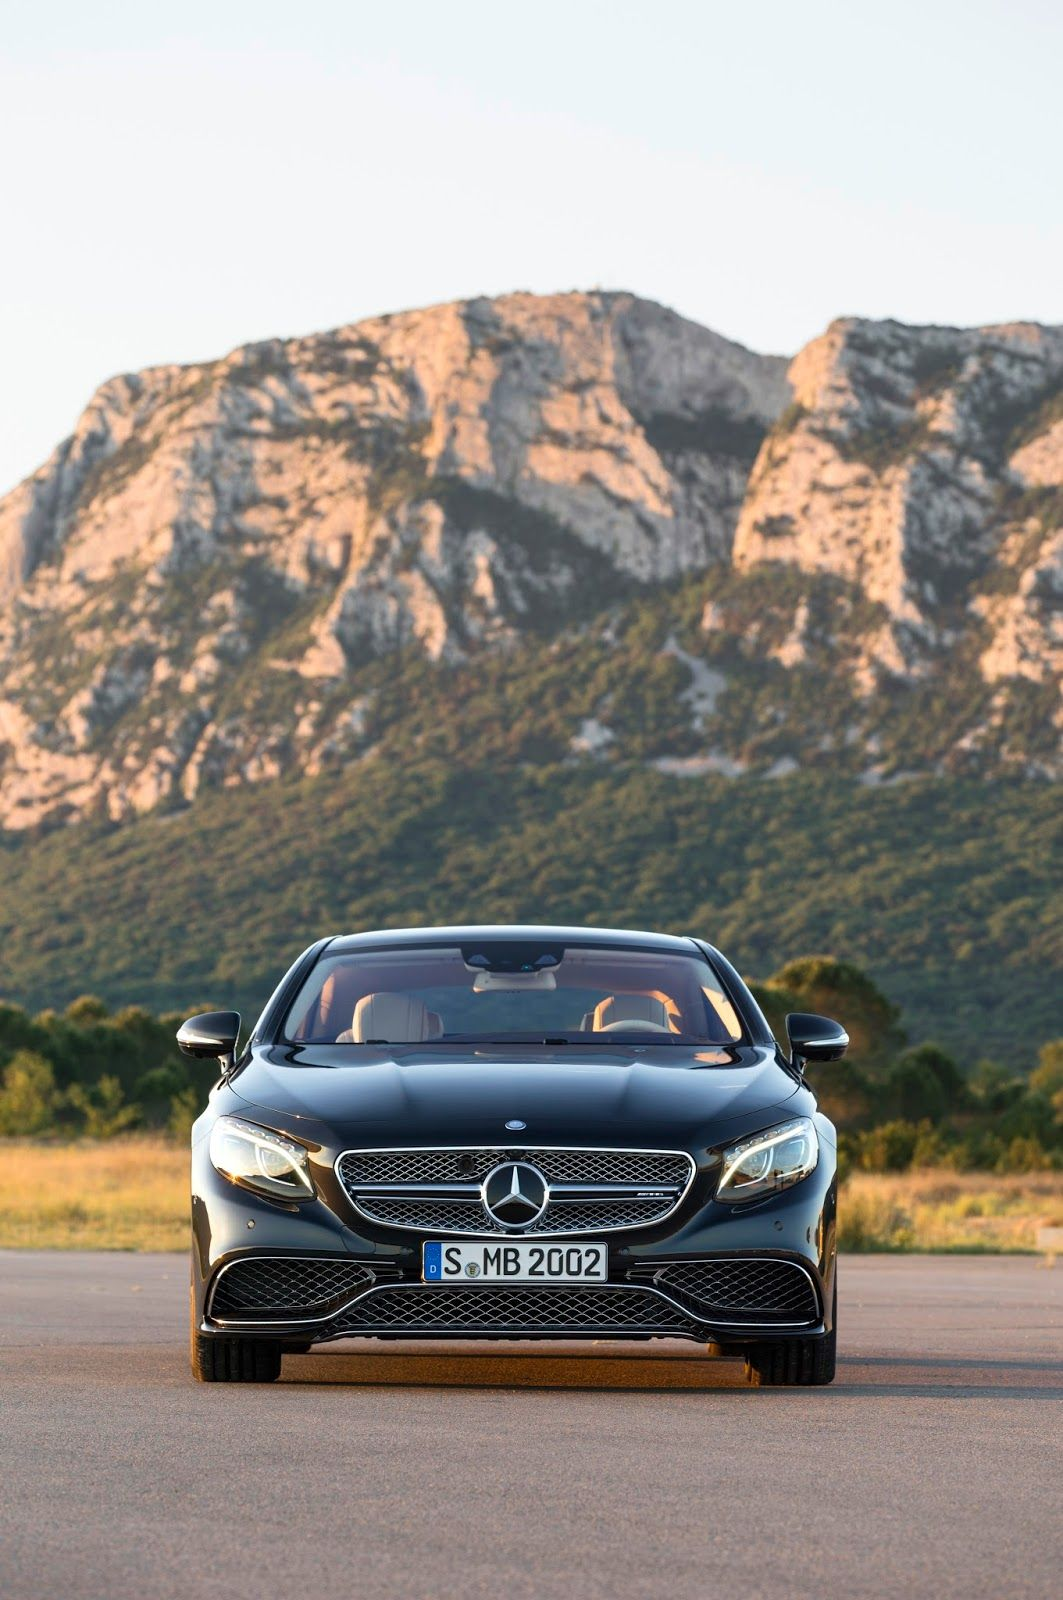 Cars life cars fashion lifestyle blog mercedes s65 amg coupe used to